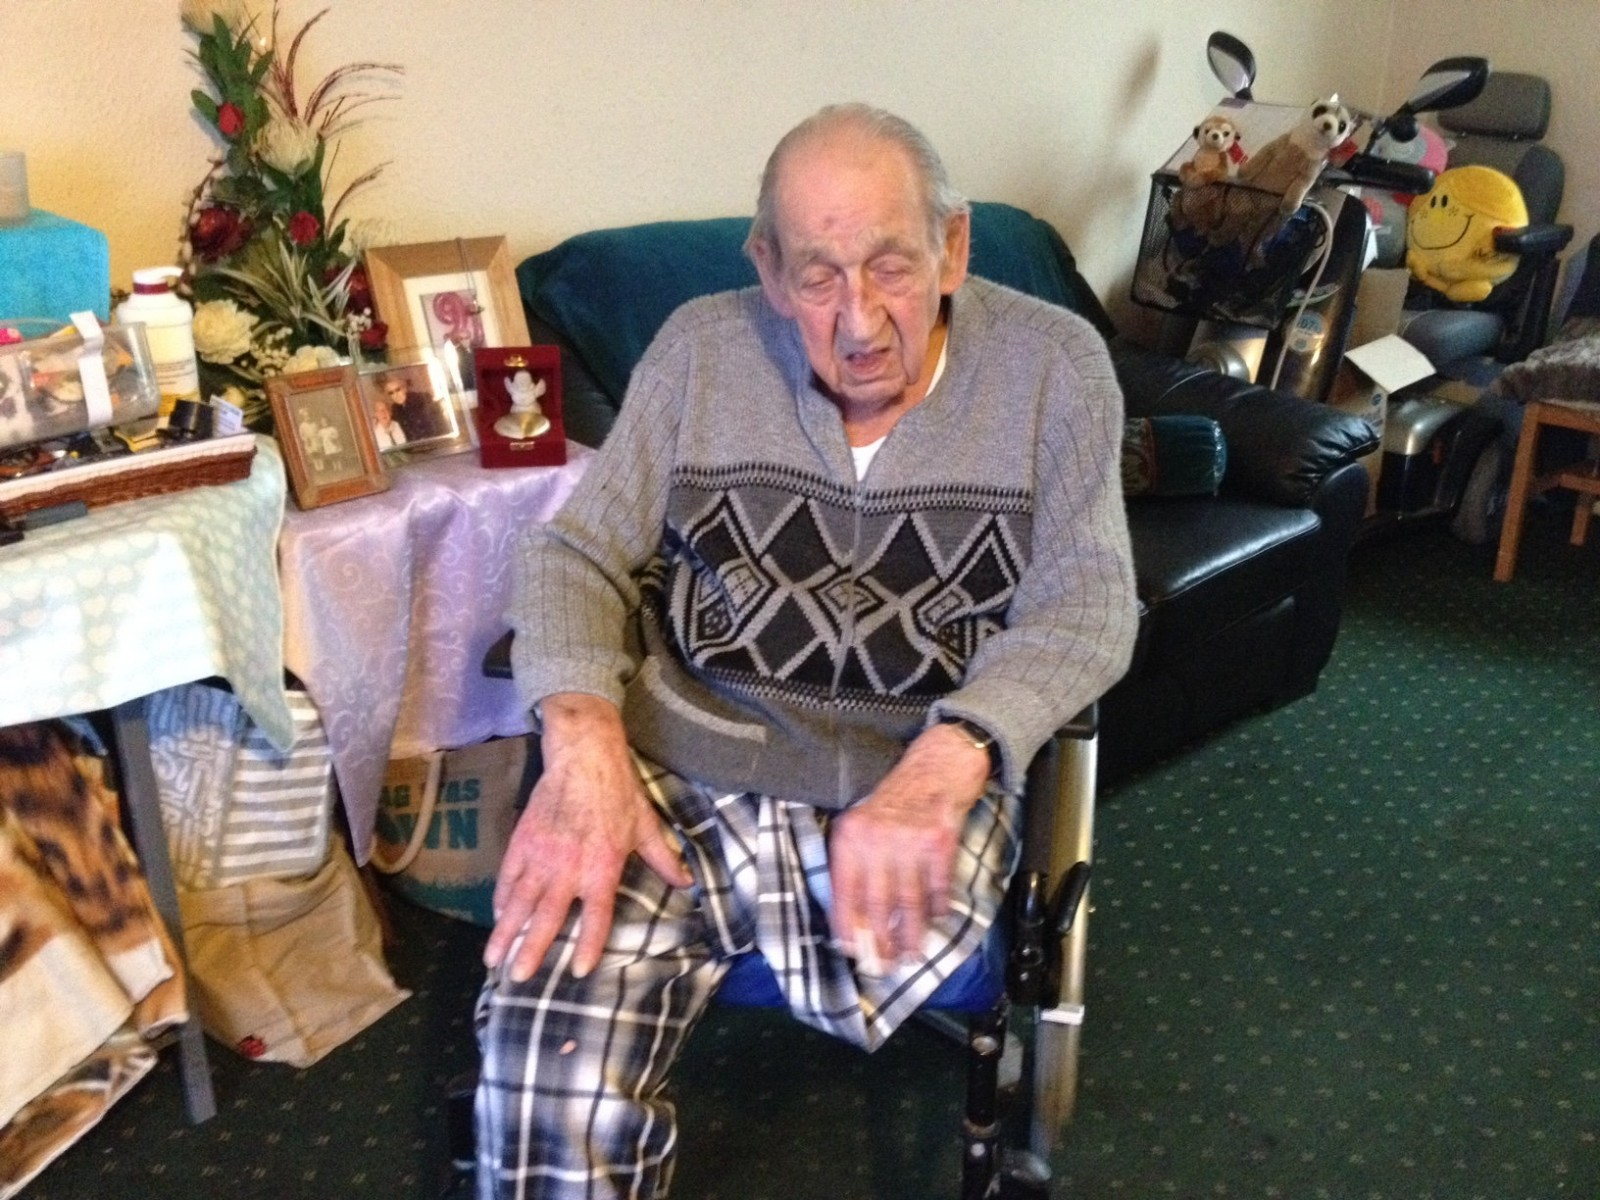 An elderly amputee saved his own life when his wheelchair caught fire by stamping out the flames – using his ONE leg.